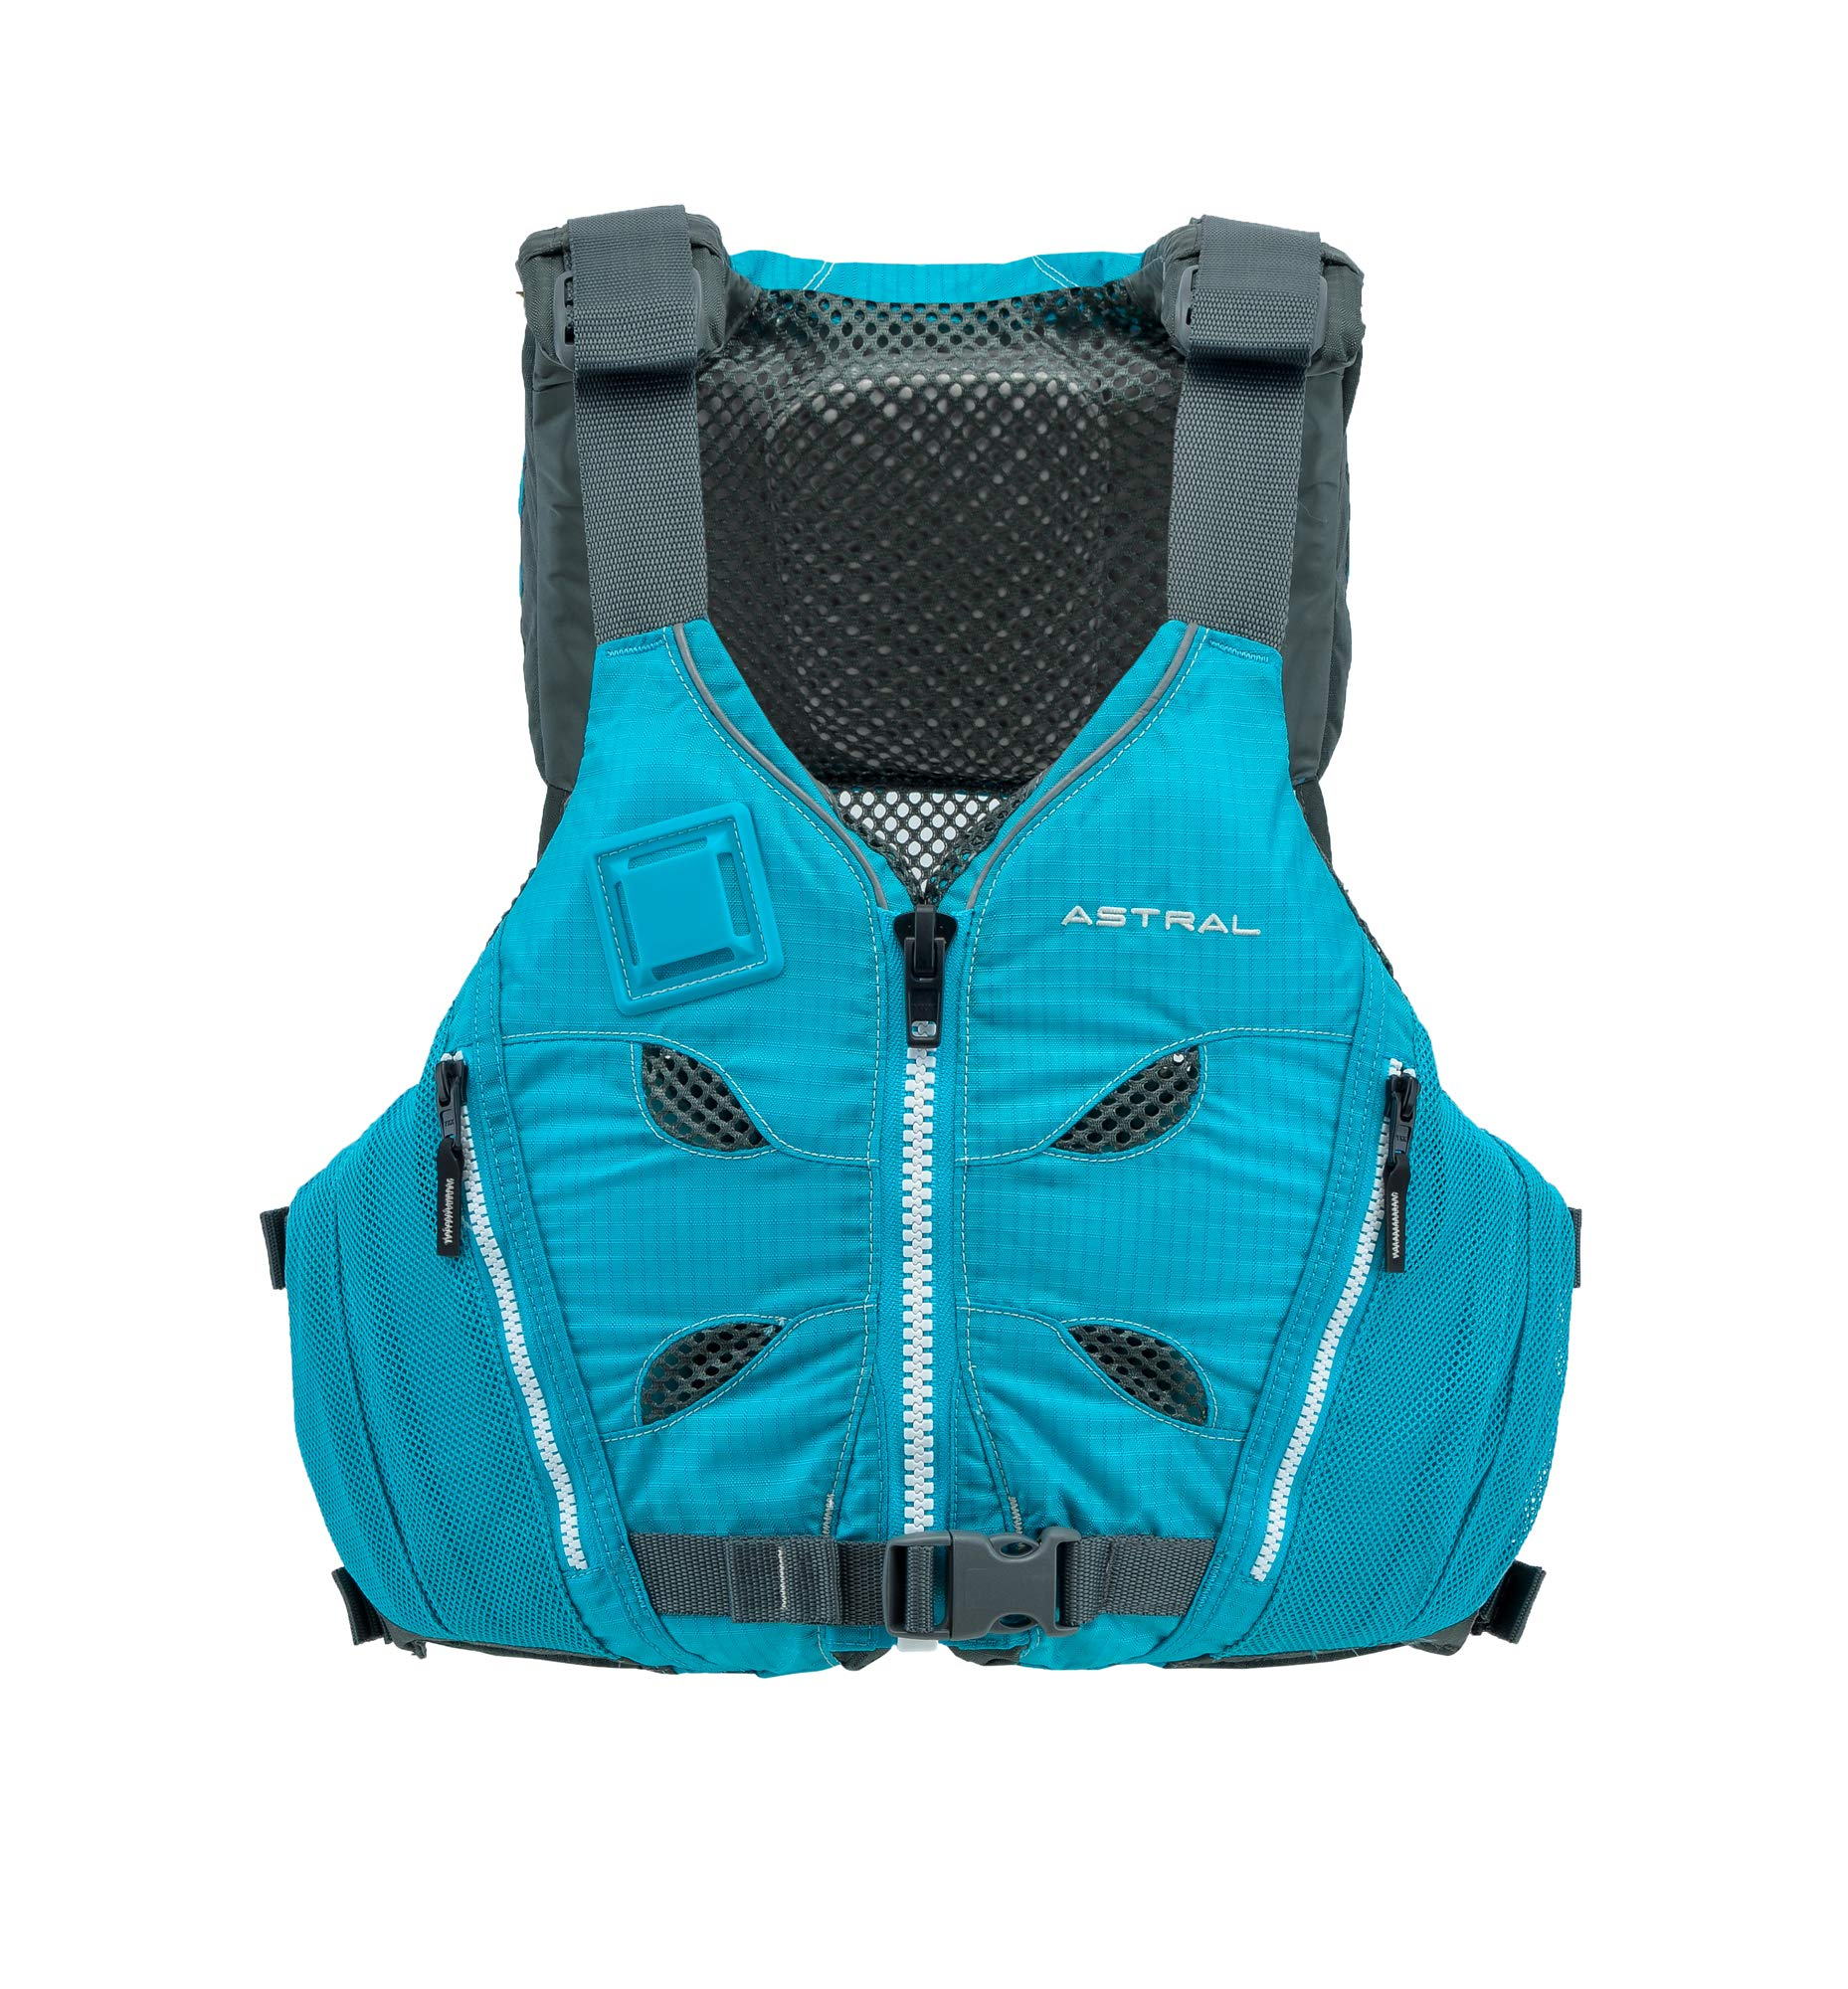 Astral V-Eight Life Jacket PFD for Recreation, Fishing and Touring Kayaking, Glacier Blue, Small/Medium by Astral